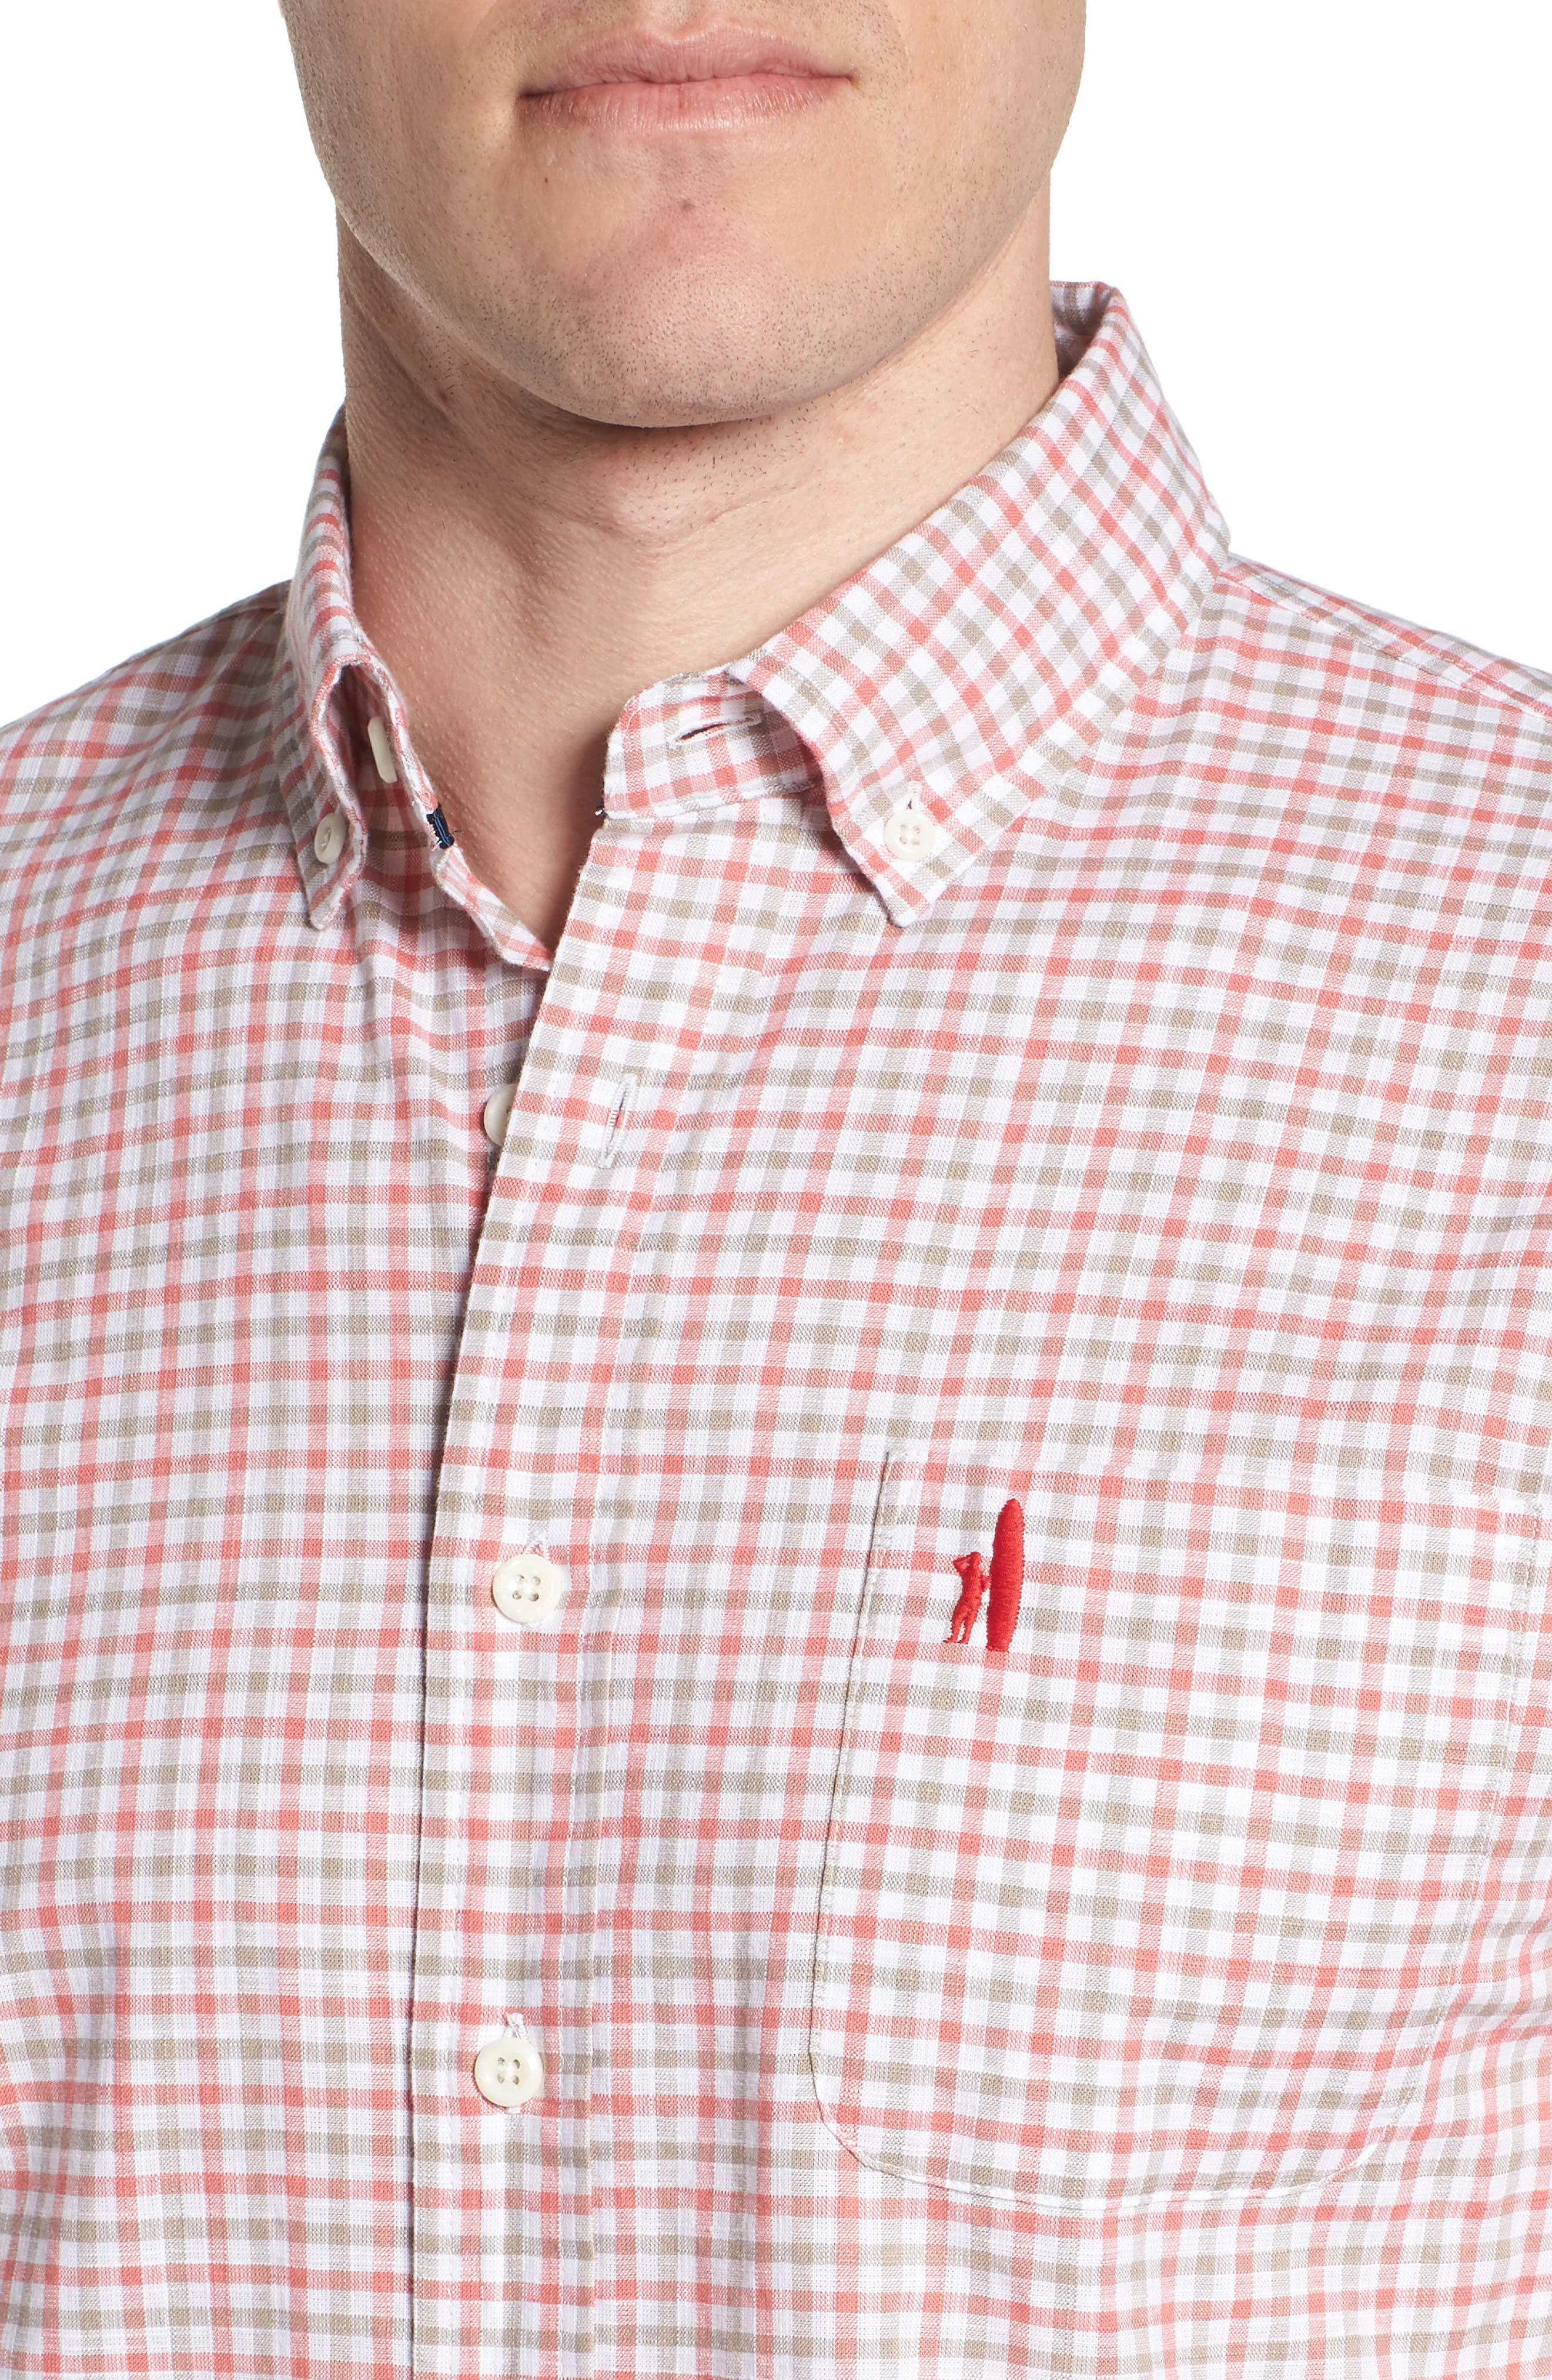 Driscoll Regular Fit Sport Shirt,                             Alternate thumbnail 2, color,                             Malibu Red